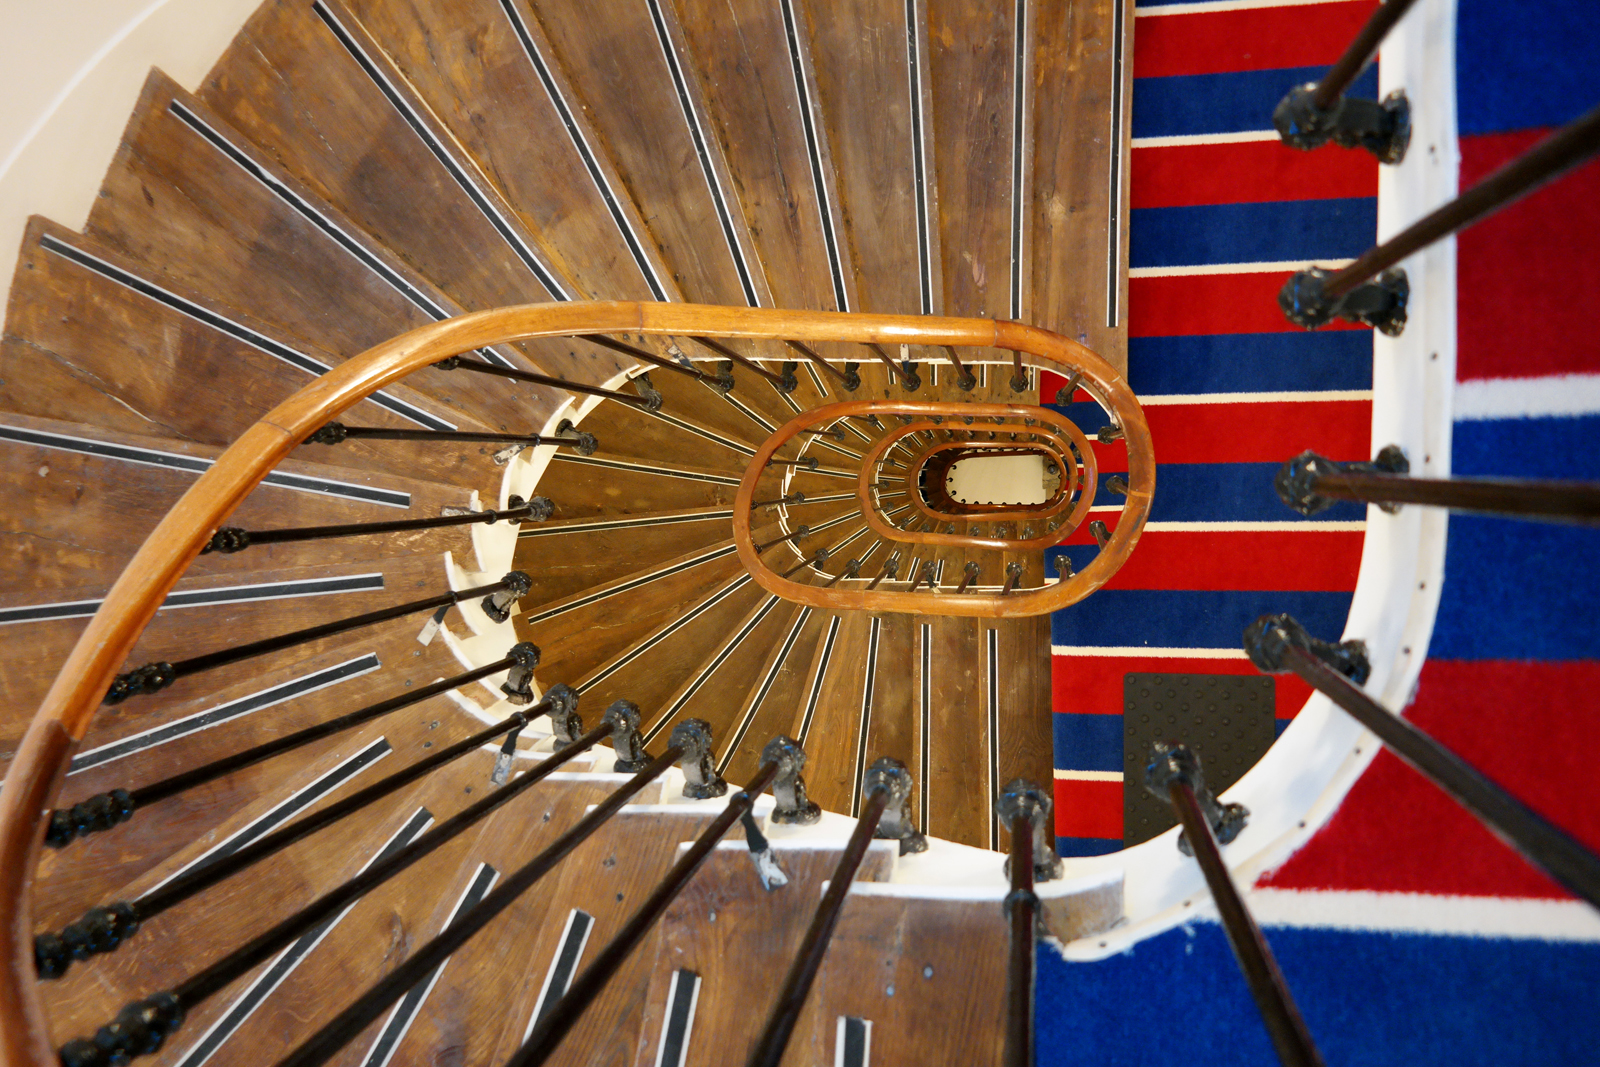 Le 34B hotel astotel paris 34 rue Bergere 75009 stairs view from above french design photo usofparis blog